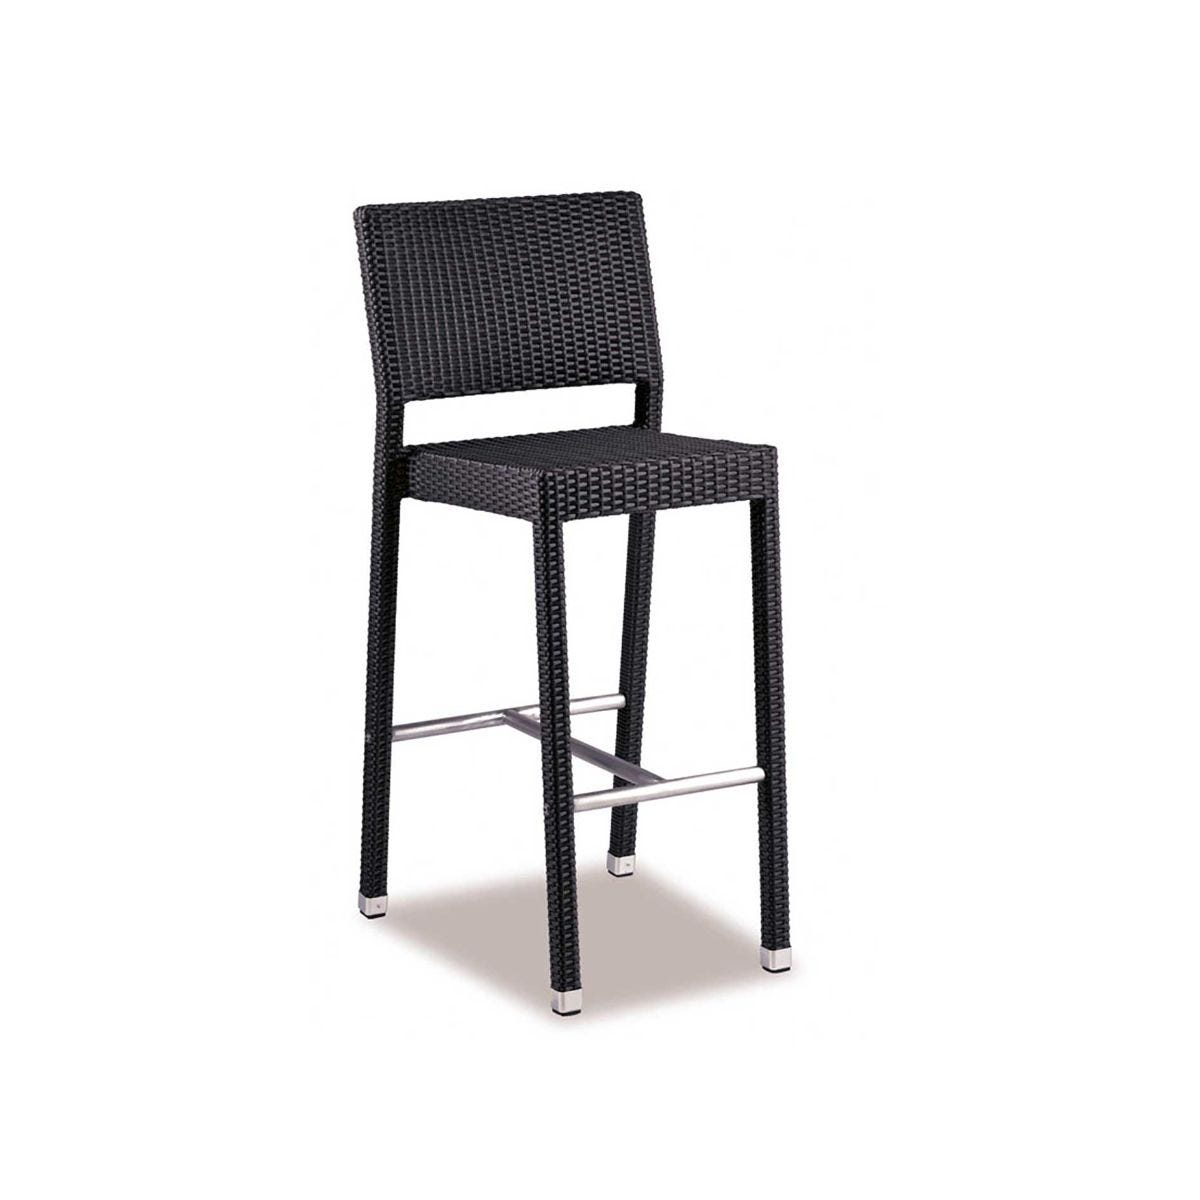 Stag Outdoor Barstool, Black